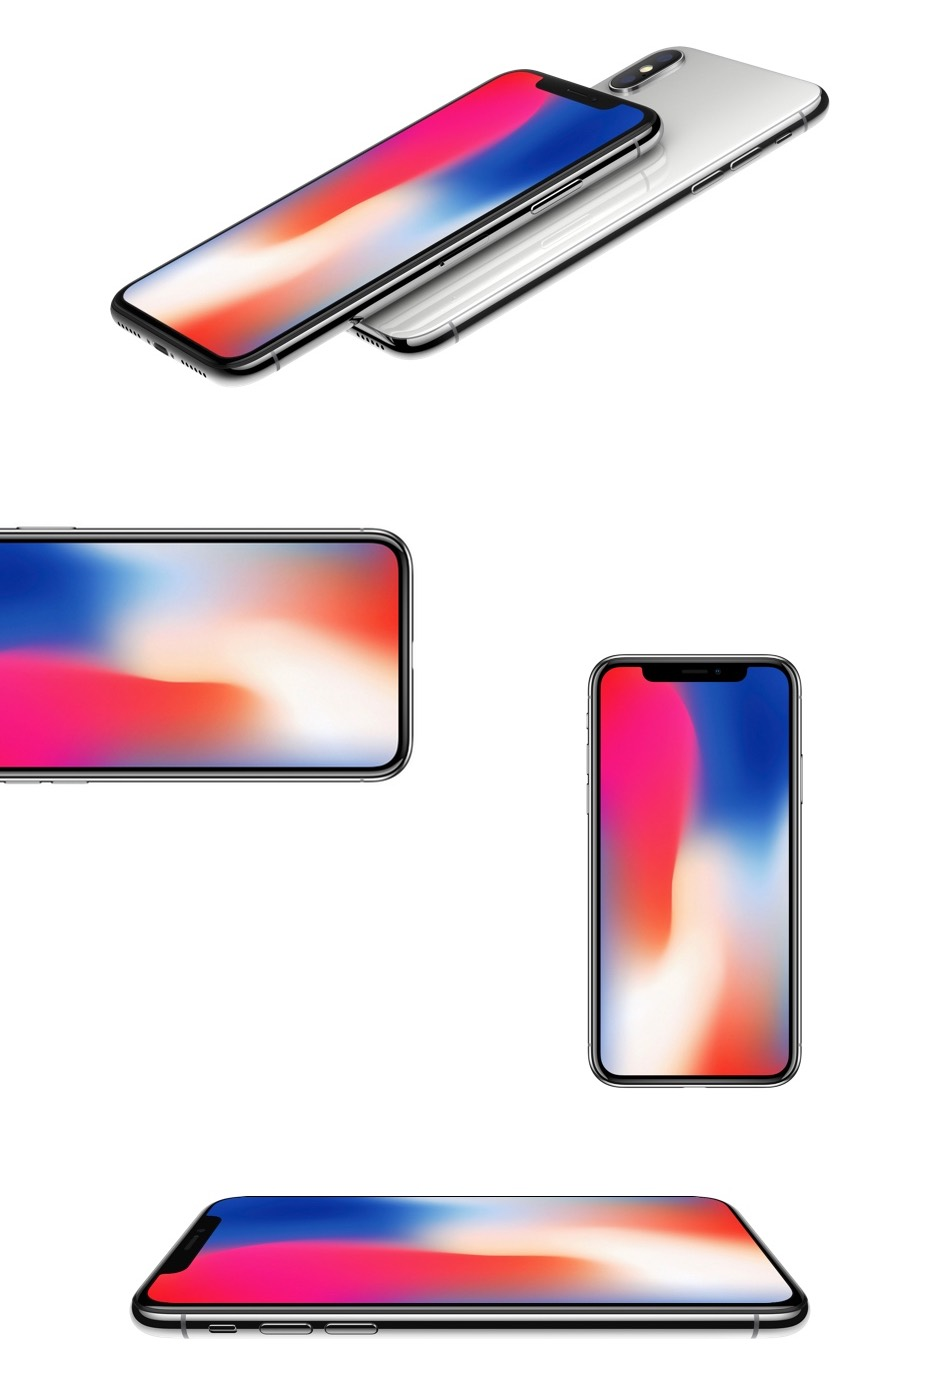 Presentation PPT design iPhoneX mockup